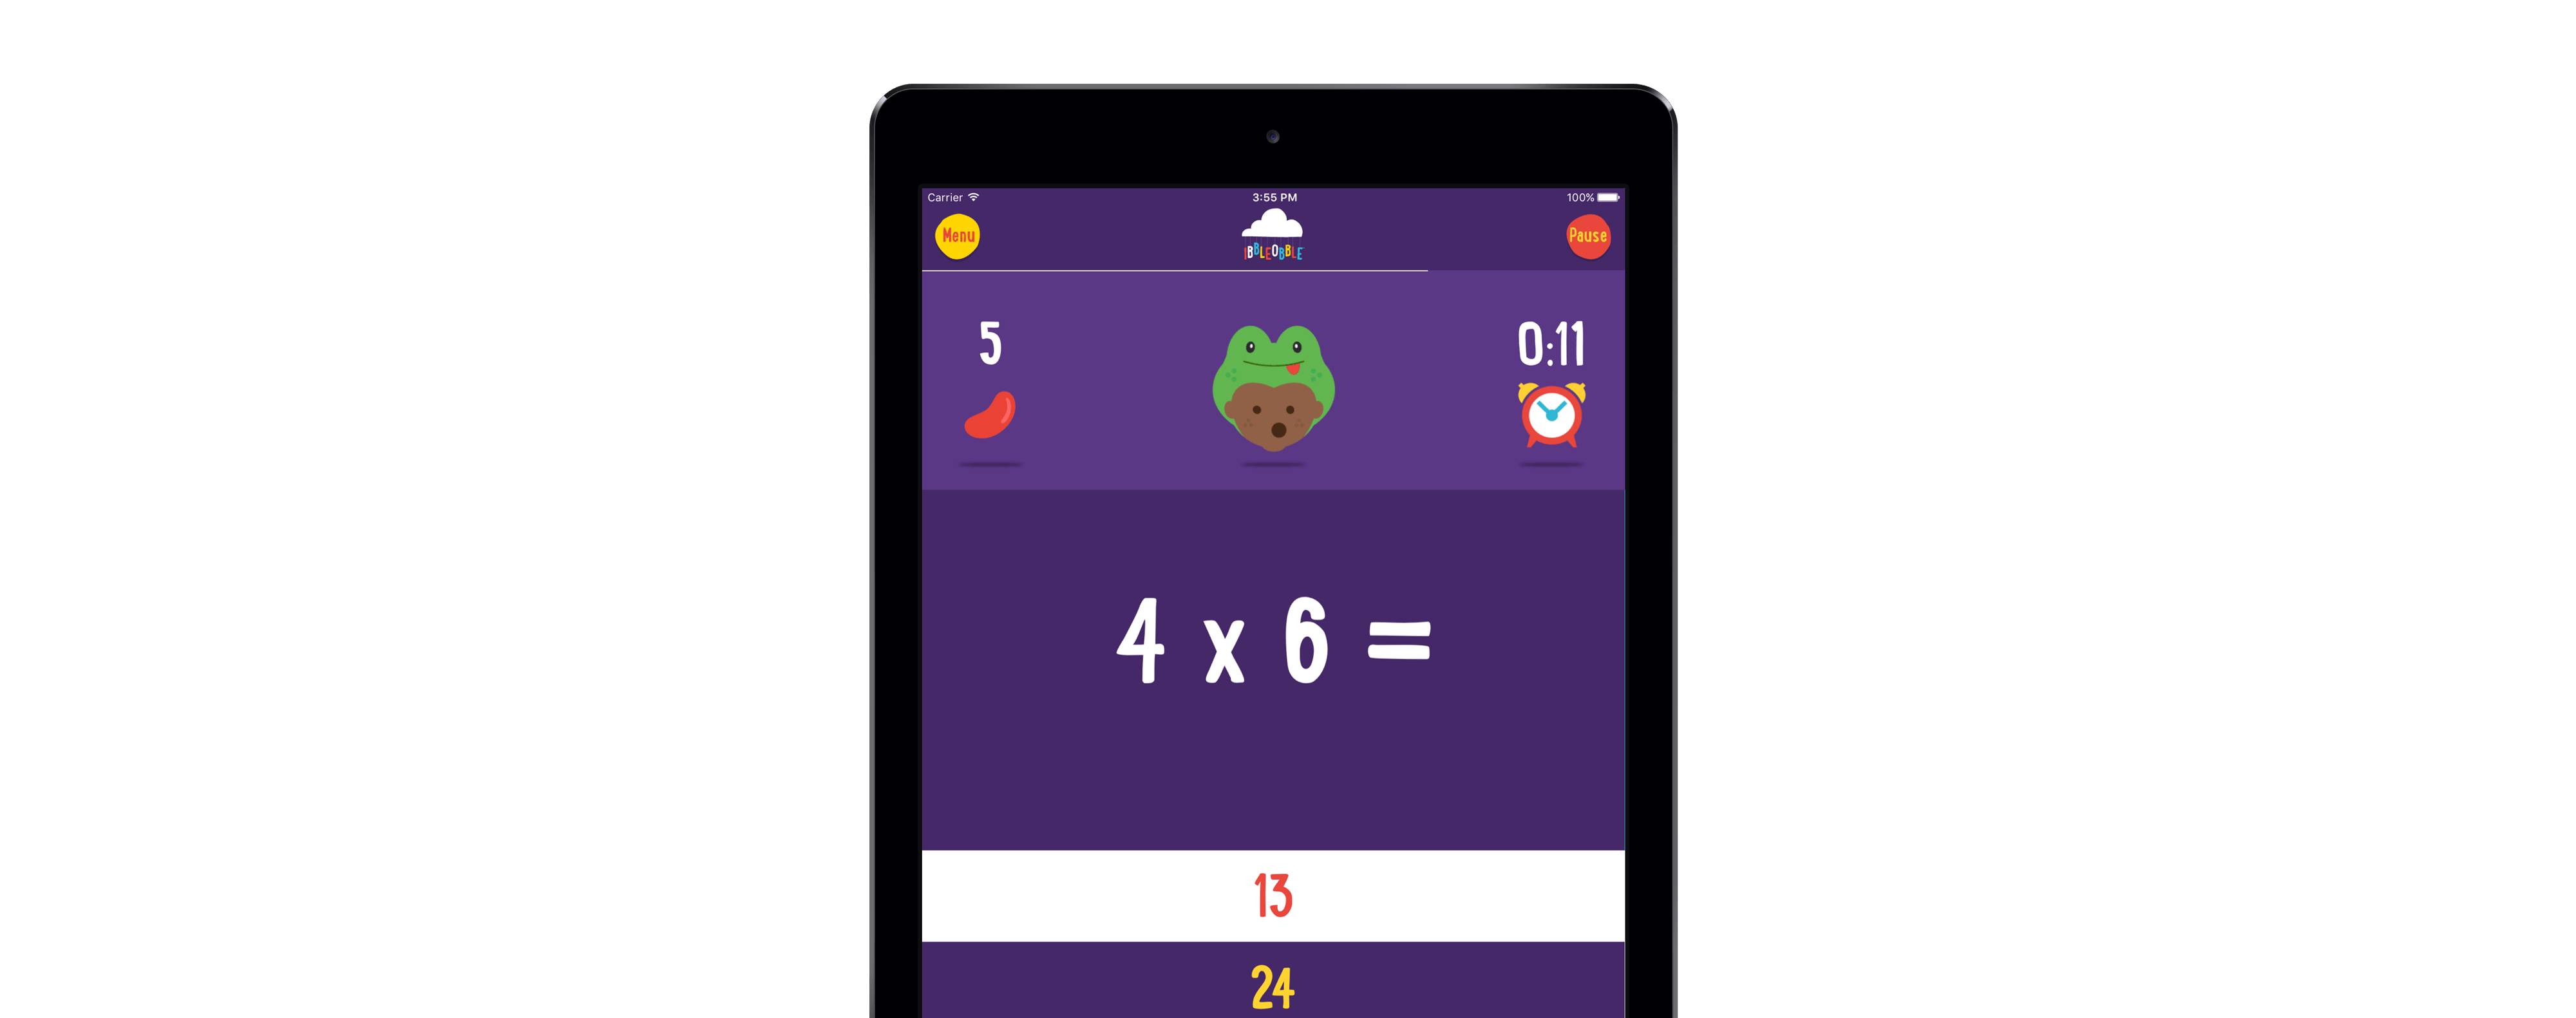 Multiplication clipart math magician. Times tables game for